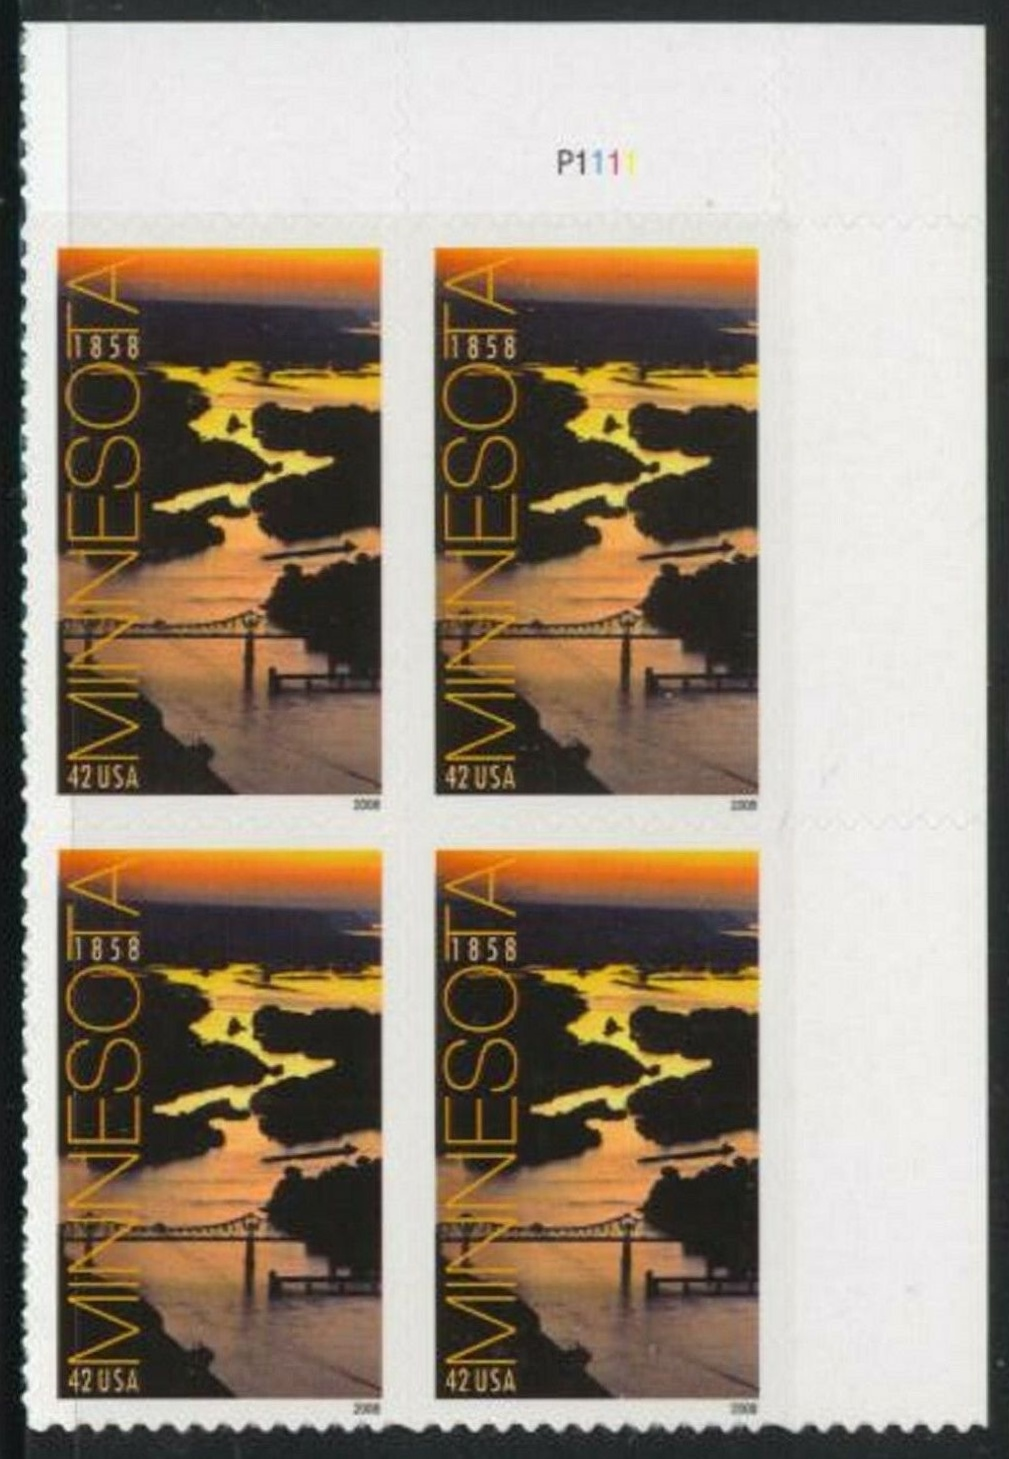 "Scott 4266 Plate Block (42 cents) <p> <a href=""/images/USA-Scott-4266-PB.jpg""><font color=green><b>View the image</a></b></font>"